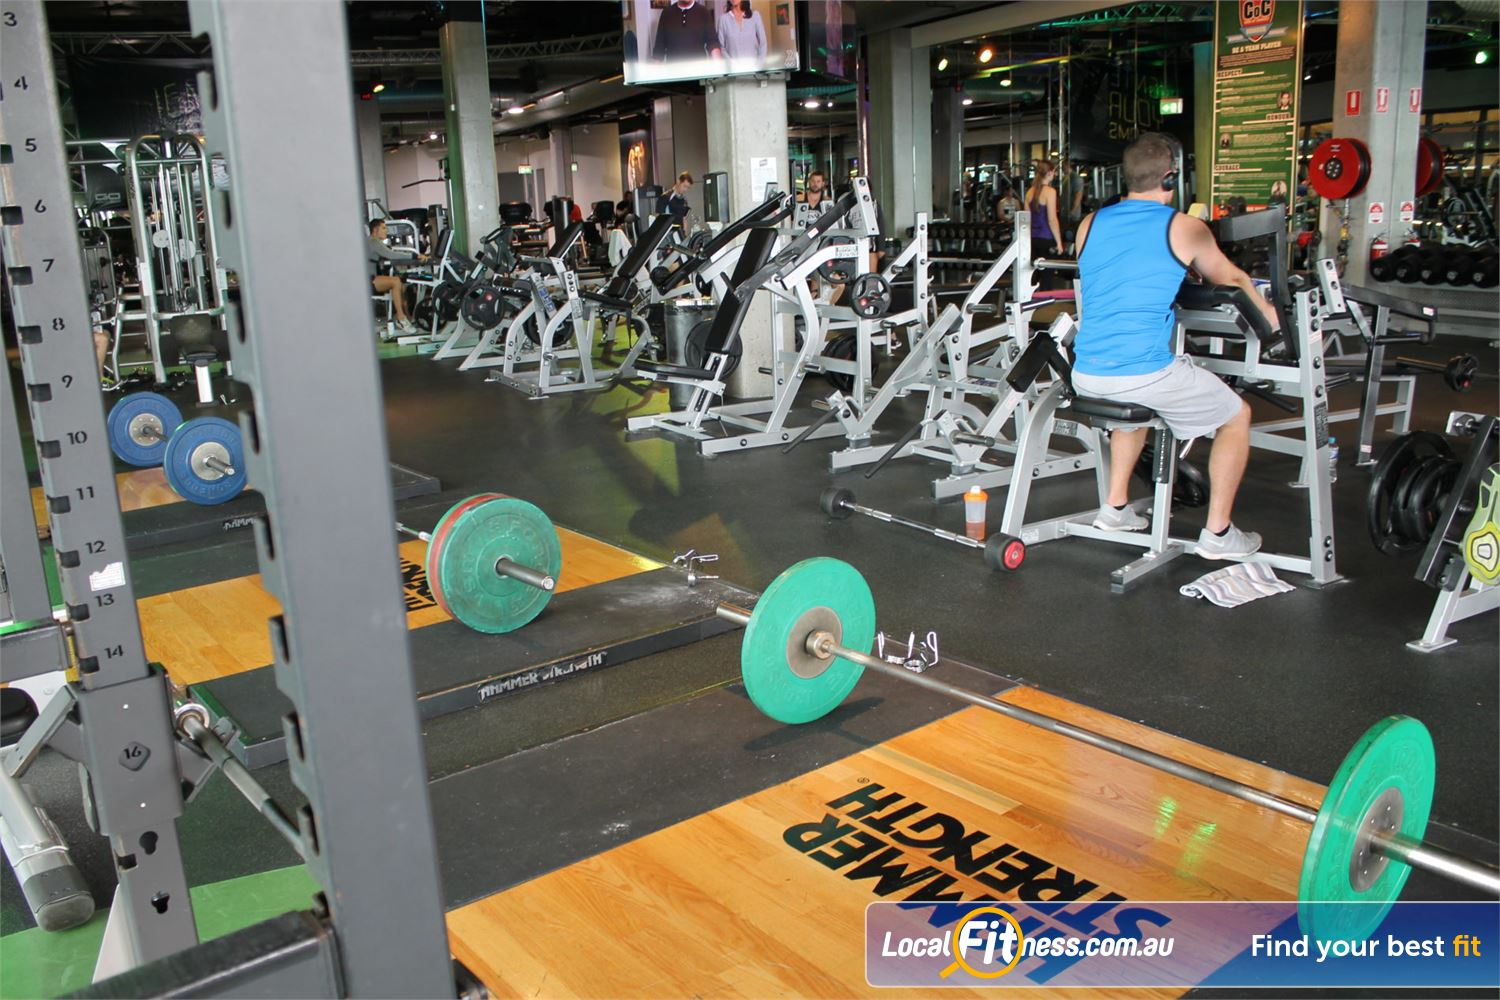 Goodlife Health Clubs Carindale Multiple power rocks and plate loading machine from Hammer Strength.